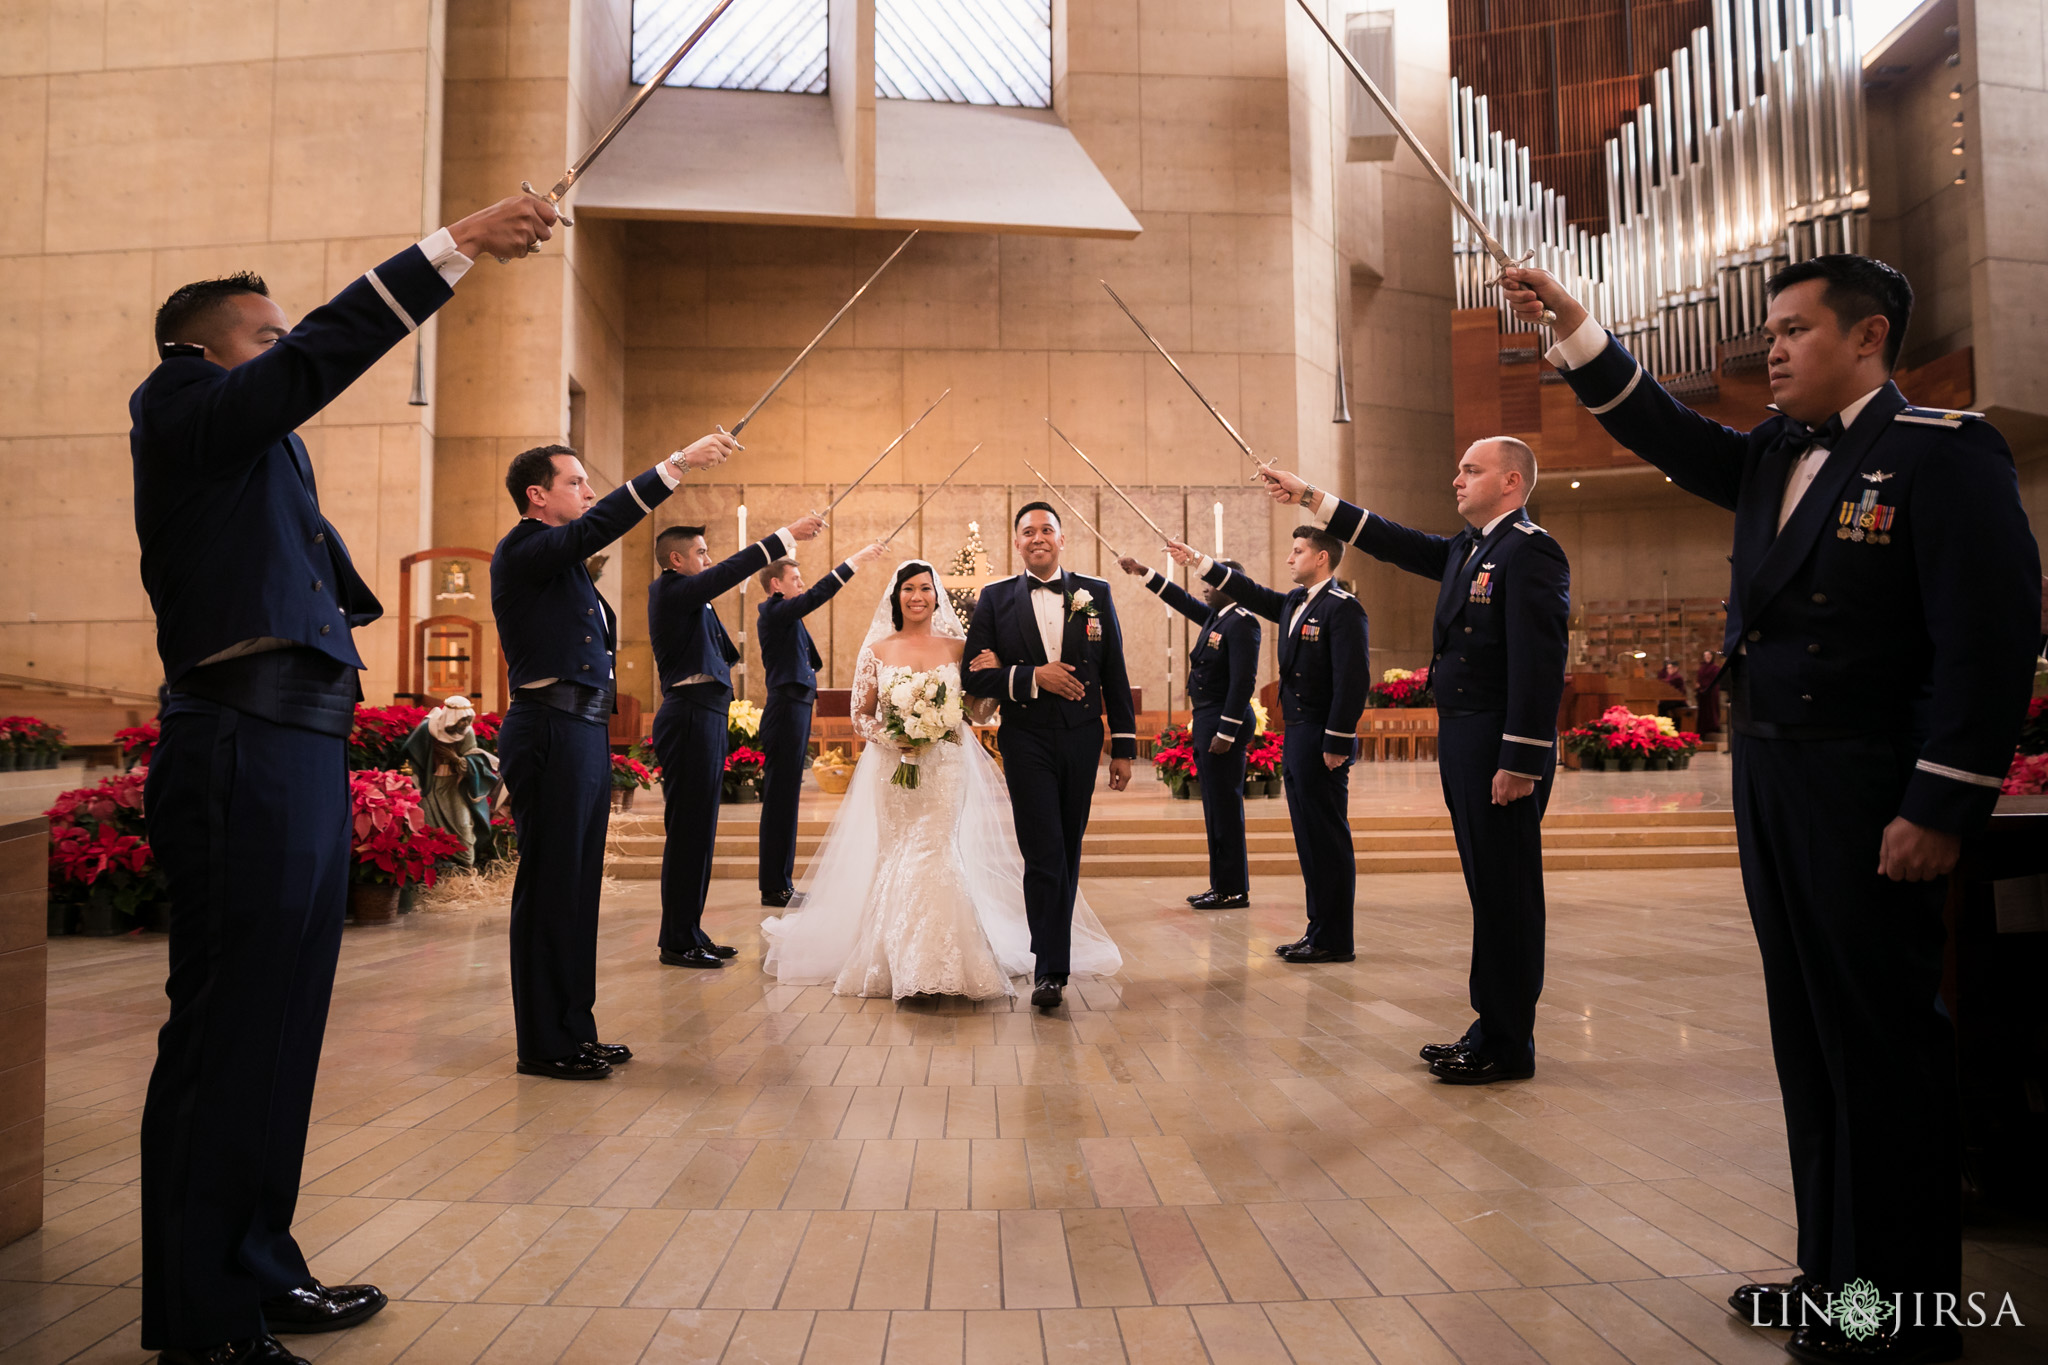 24 cathedral of our lady of angels wedding ceremony photography